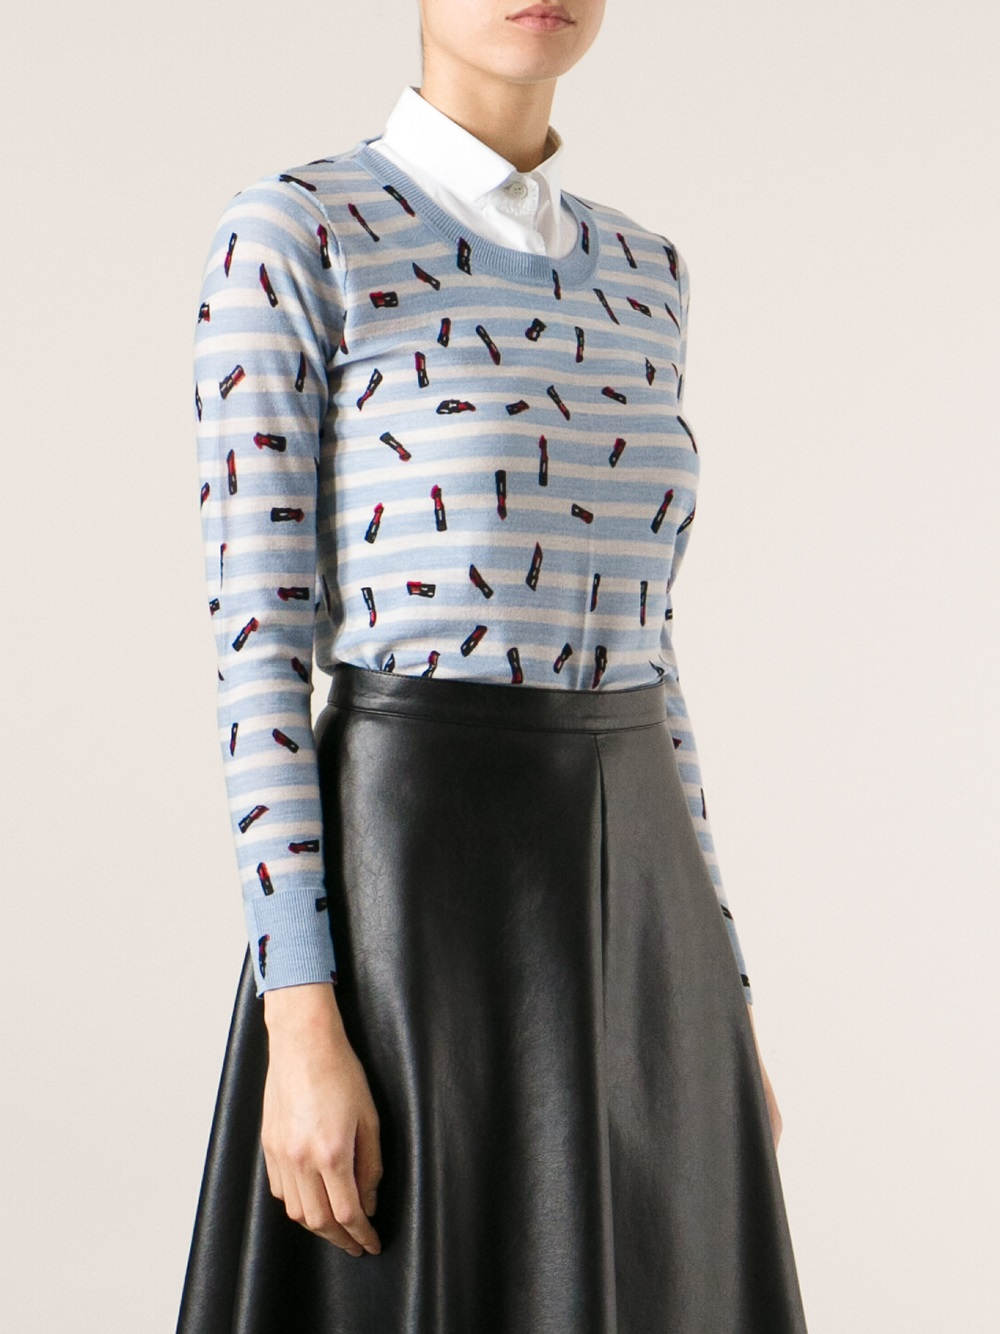 Release Dates For Sale Cheapest Online Sonia Rykiel lips print cardigan Free Shipping Affordable Sast IEOUsG